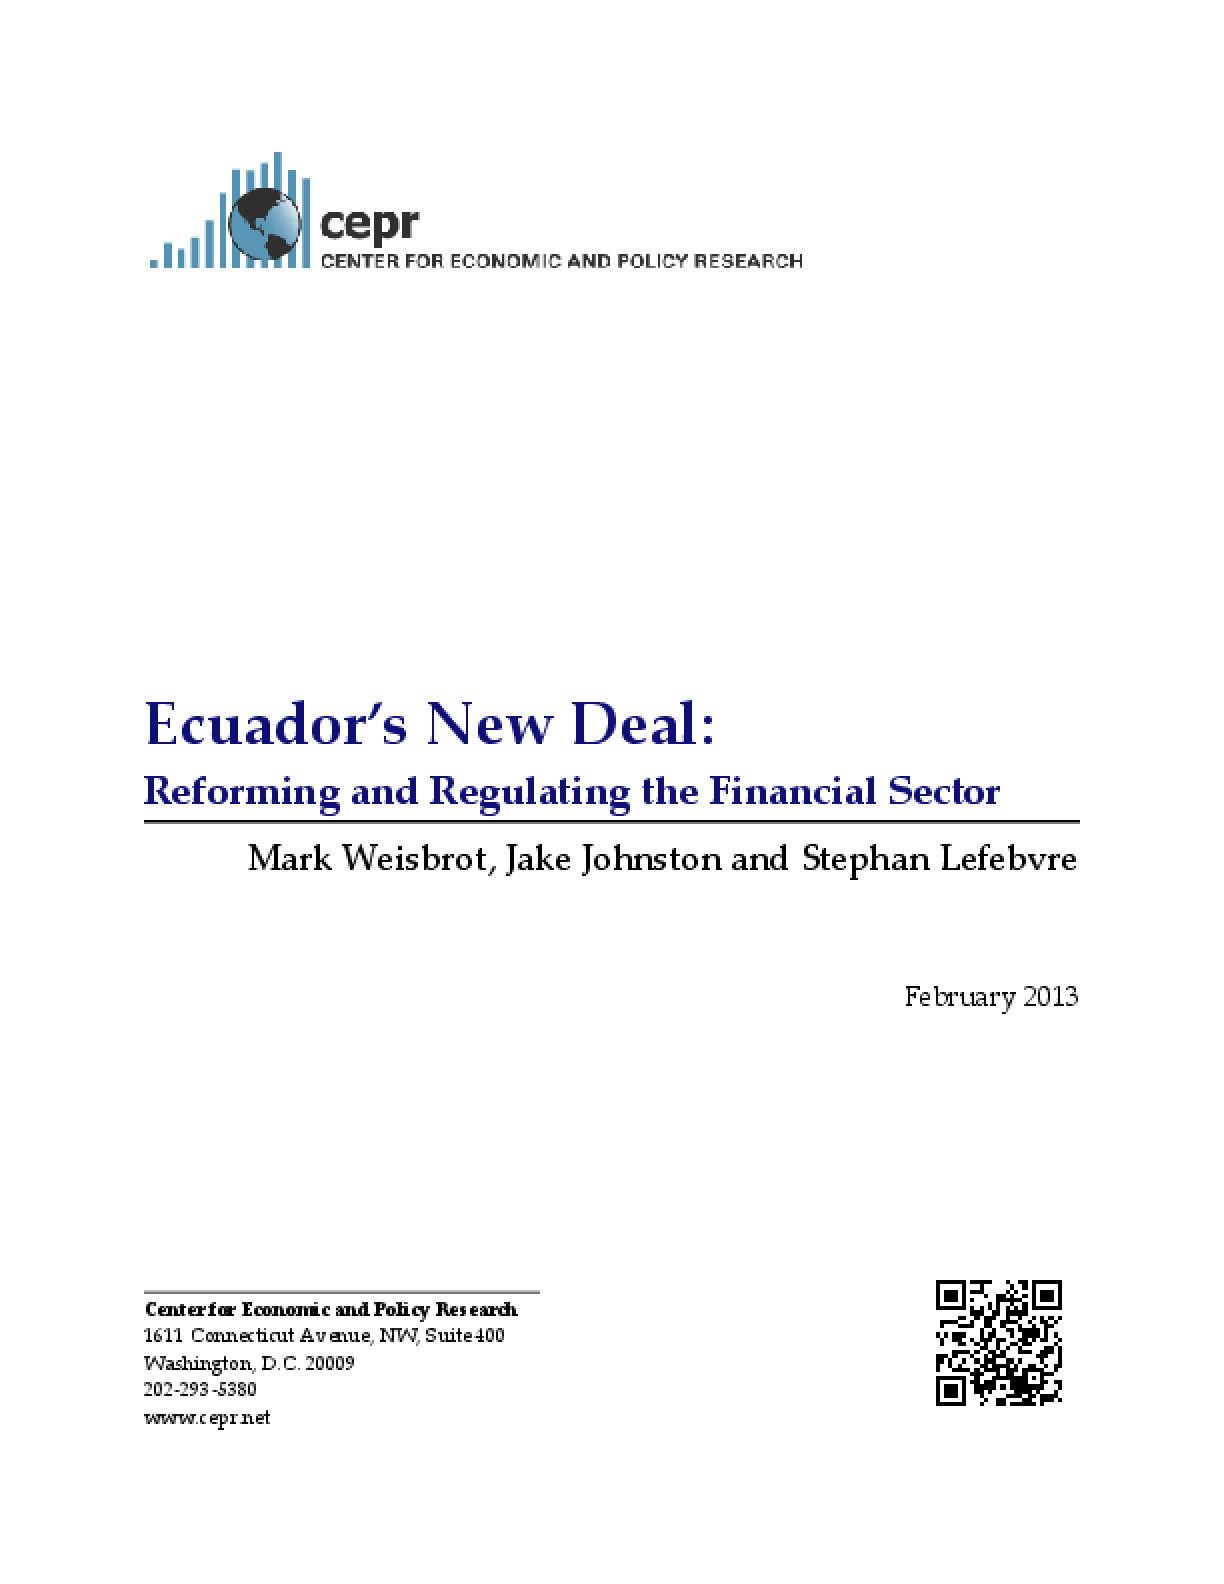 Ecuador's New Deal: Reforming and Regulating the Financial Sector